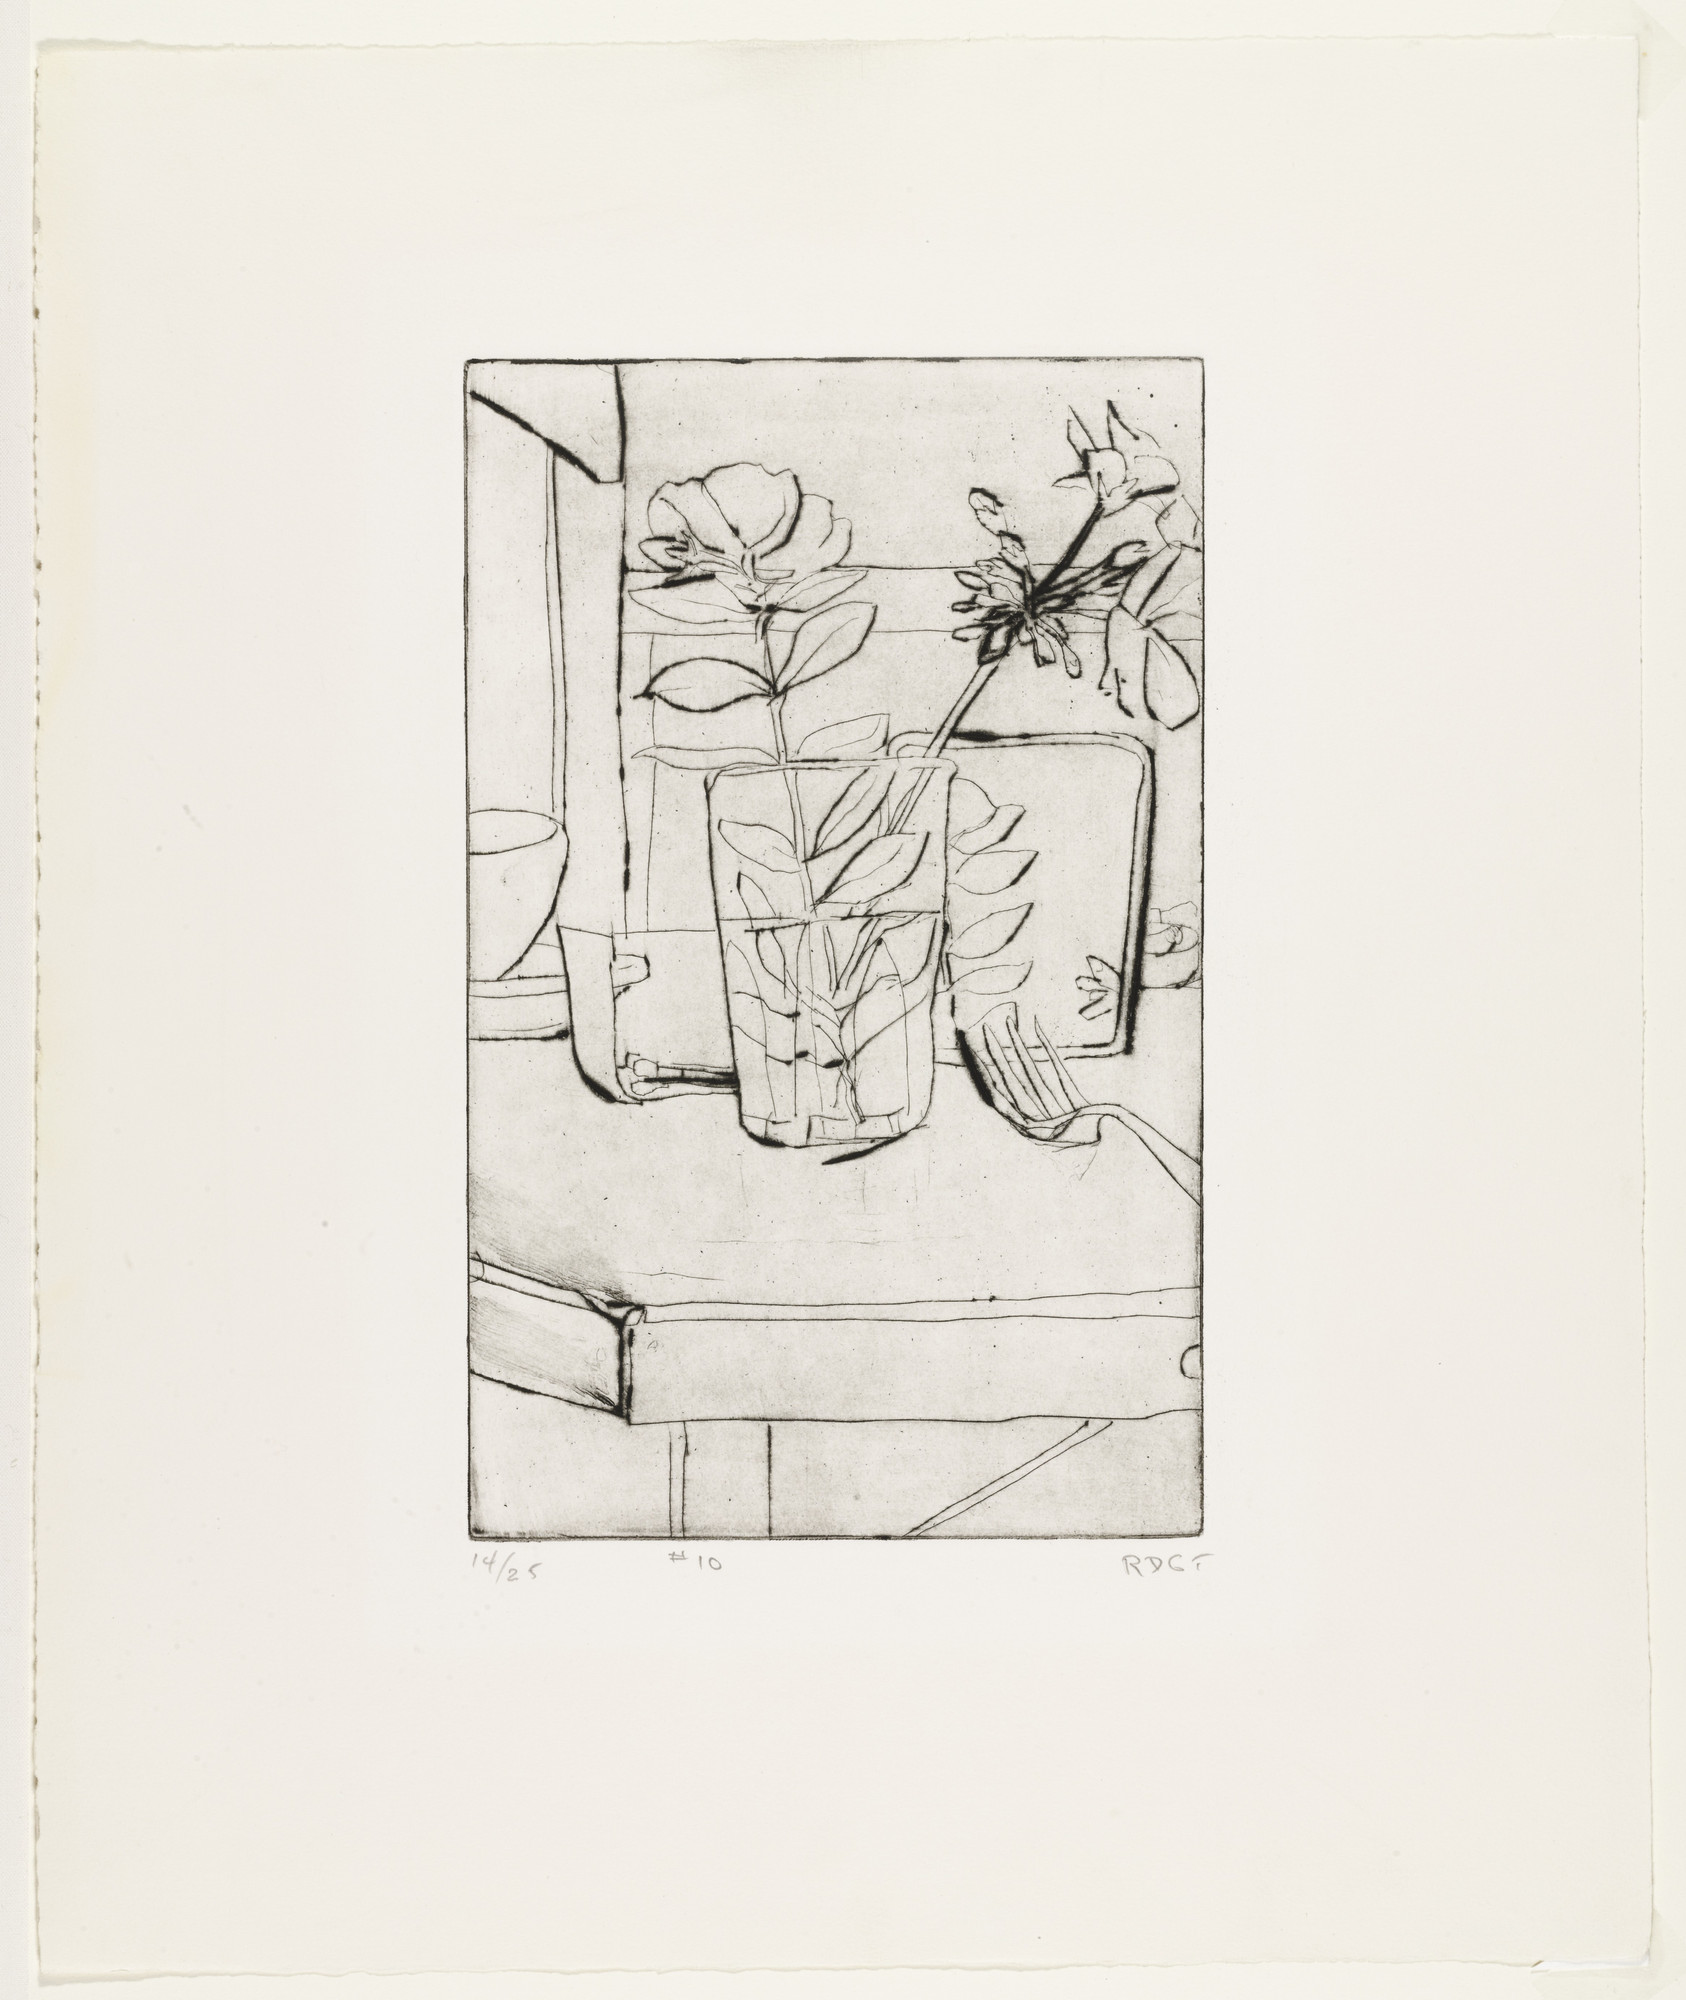 Richard Diebenkorn. No. 10 from the portfolio 41 Etchings and Drypoints. 1965